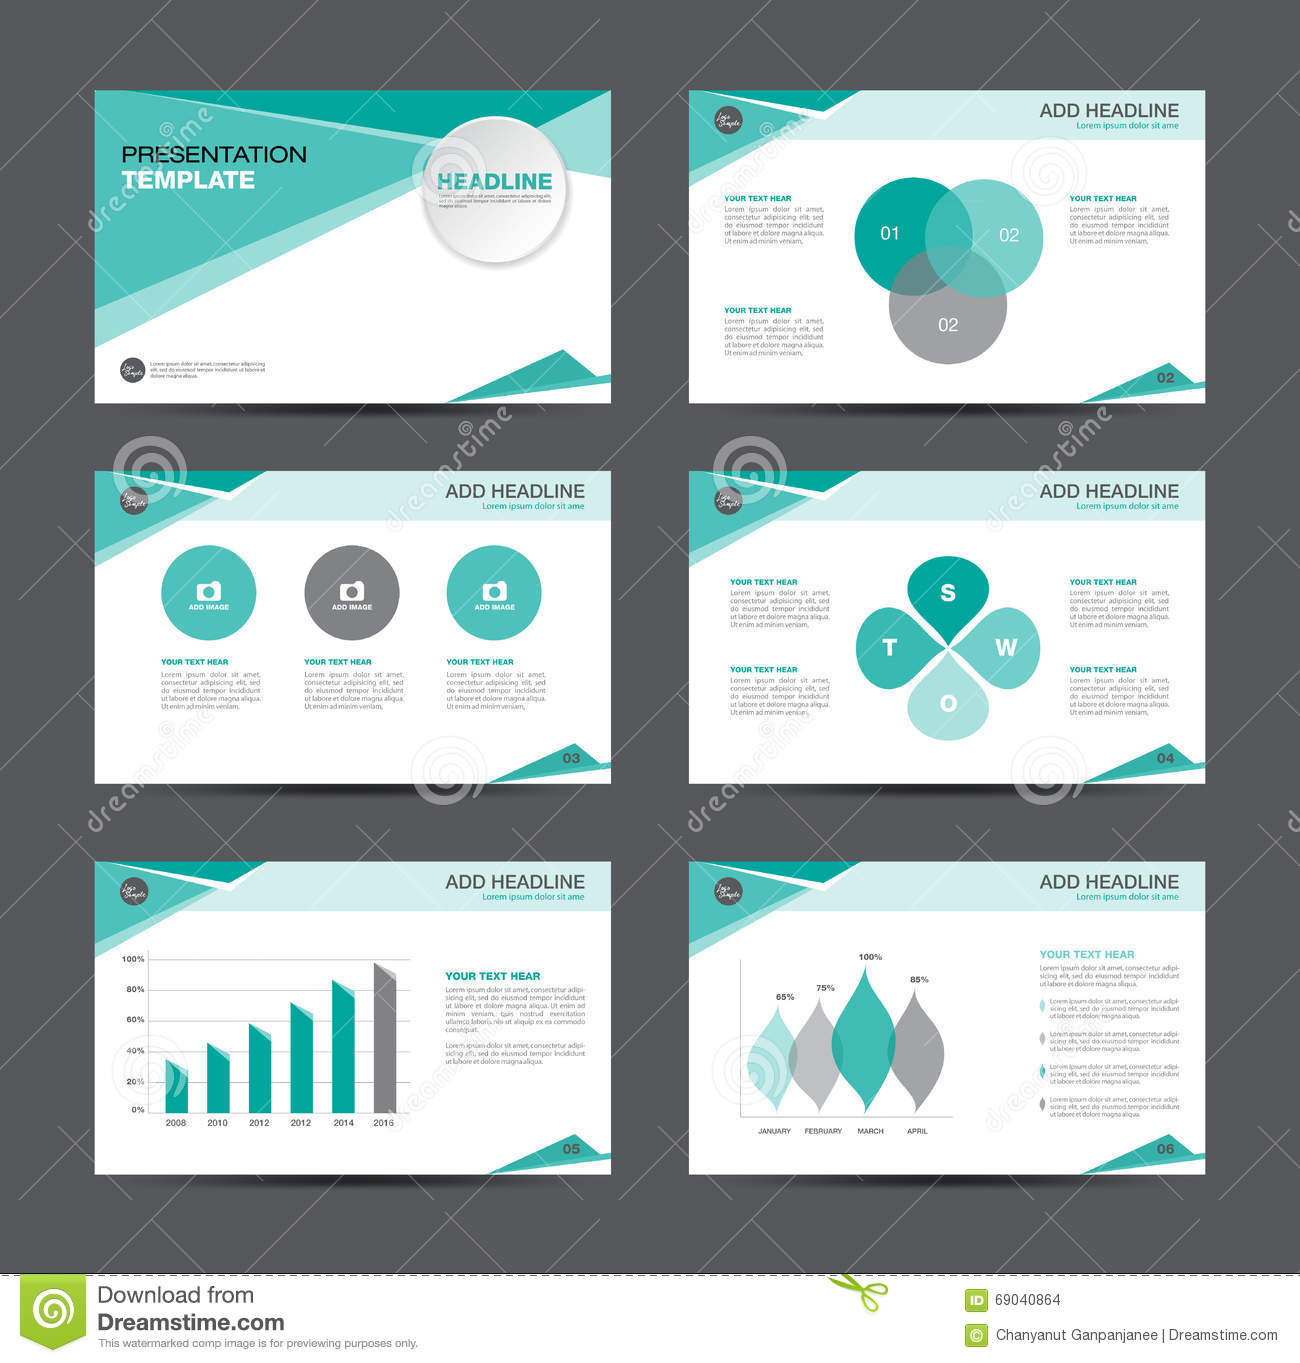 presentation, poster, brochure, fl yer, info graphic design, Templates